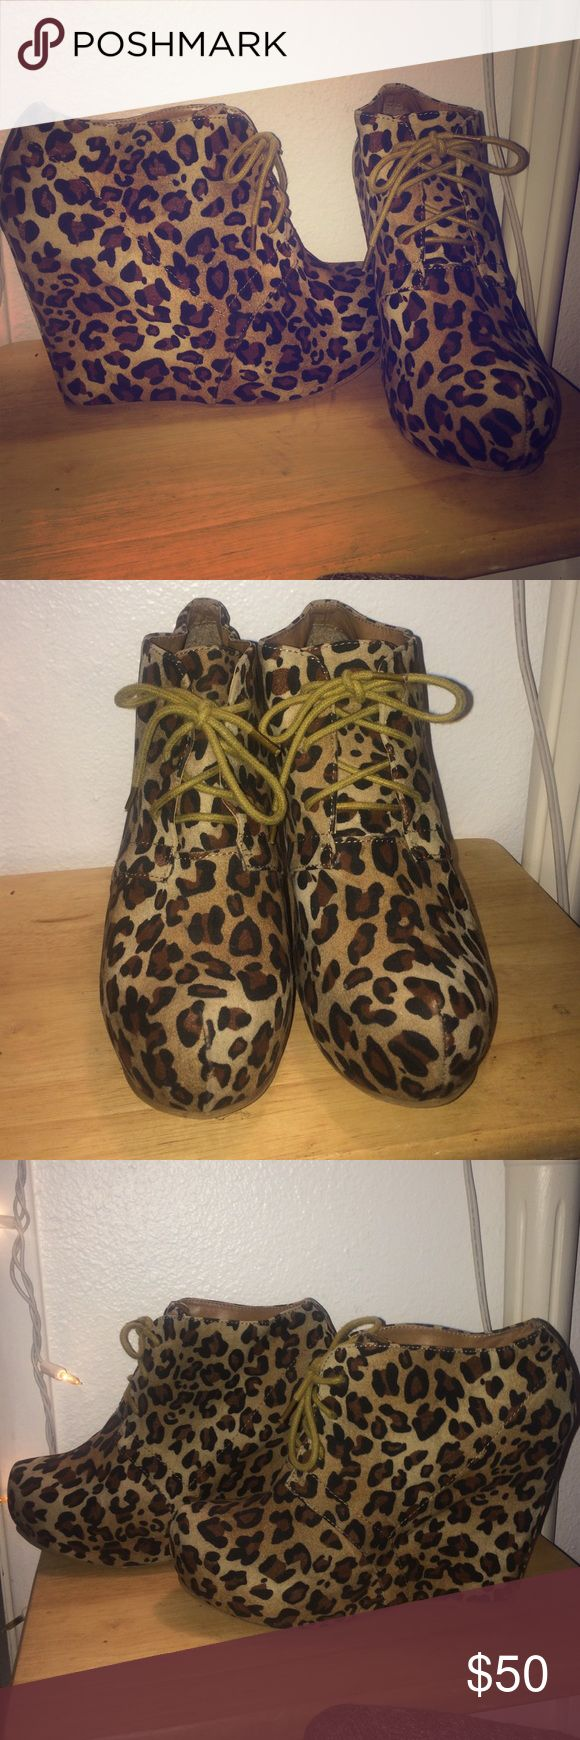 Shoedazzle Leopard Wedges Shoedazzle leopard wedge heels with laces, great condition, never worn. These are unique, chic but with a little funky style! shoedazzle Shoes Wedges